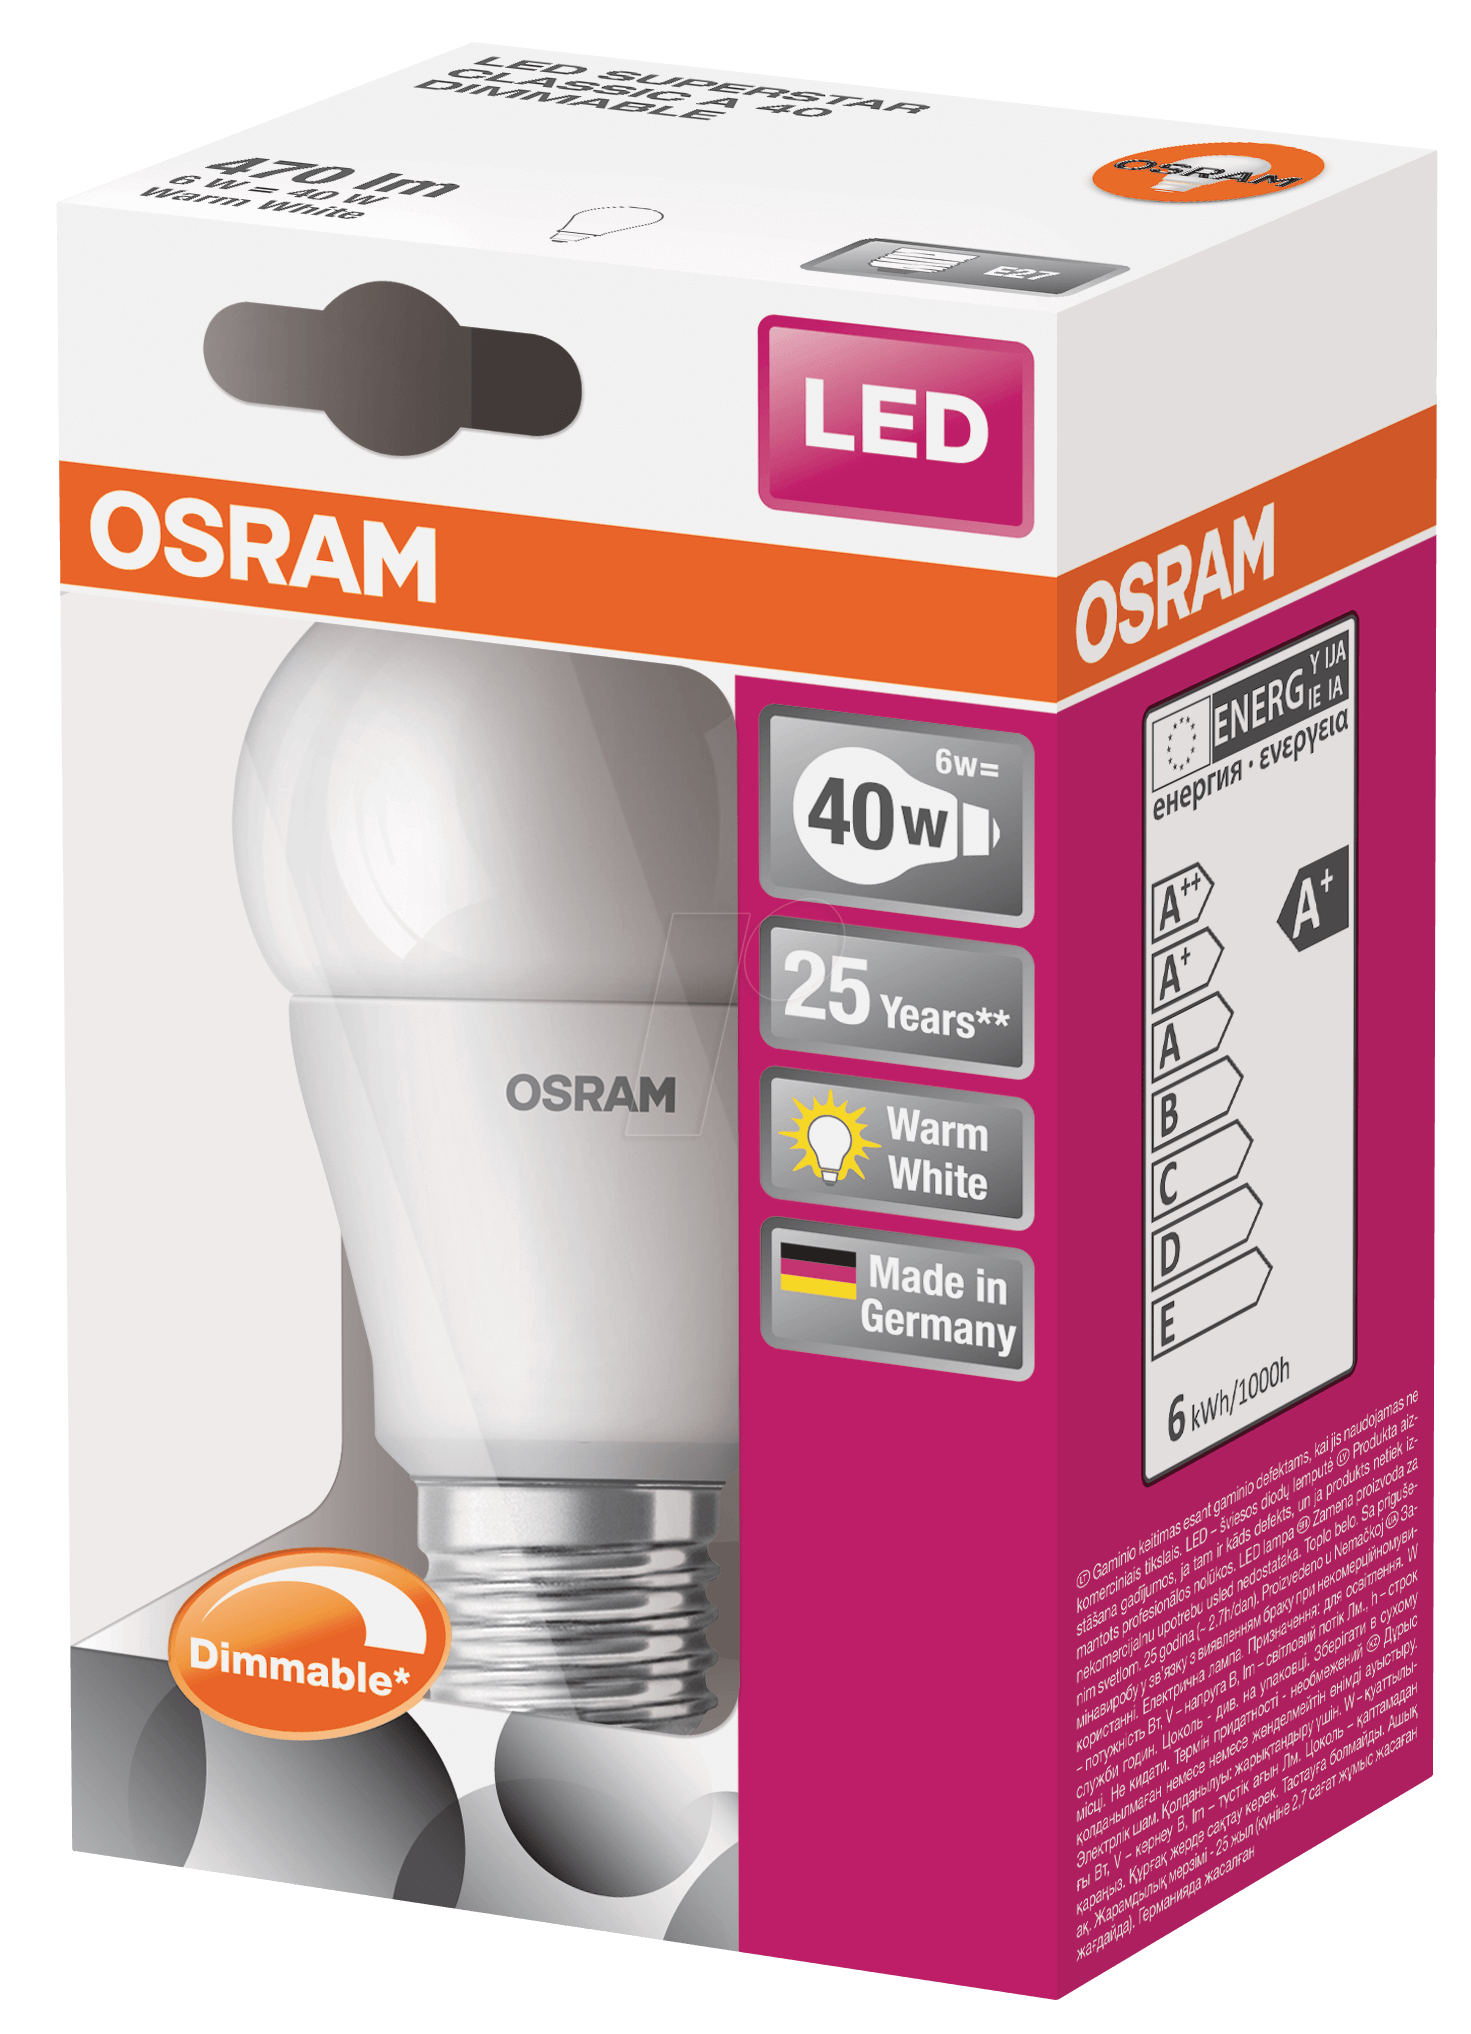 osr 899388543 osram led superstar cl a 40 6 w e27 at. Black Bedroom Furniture Sets. Home Design Ideas